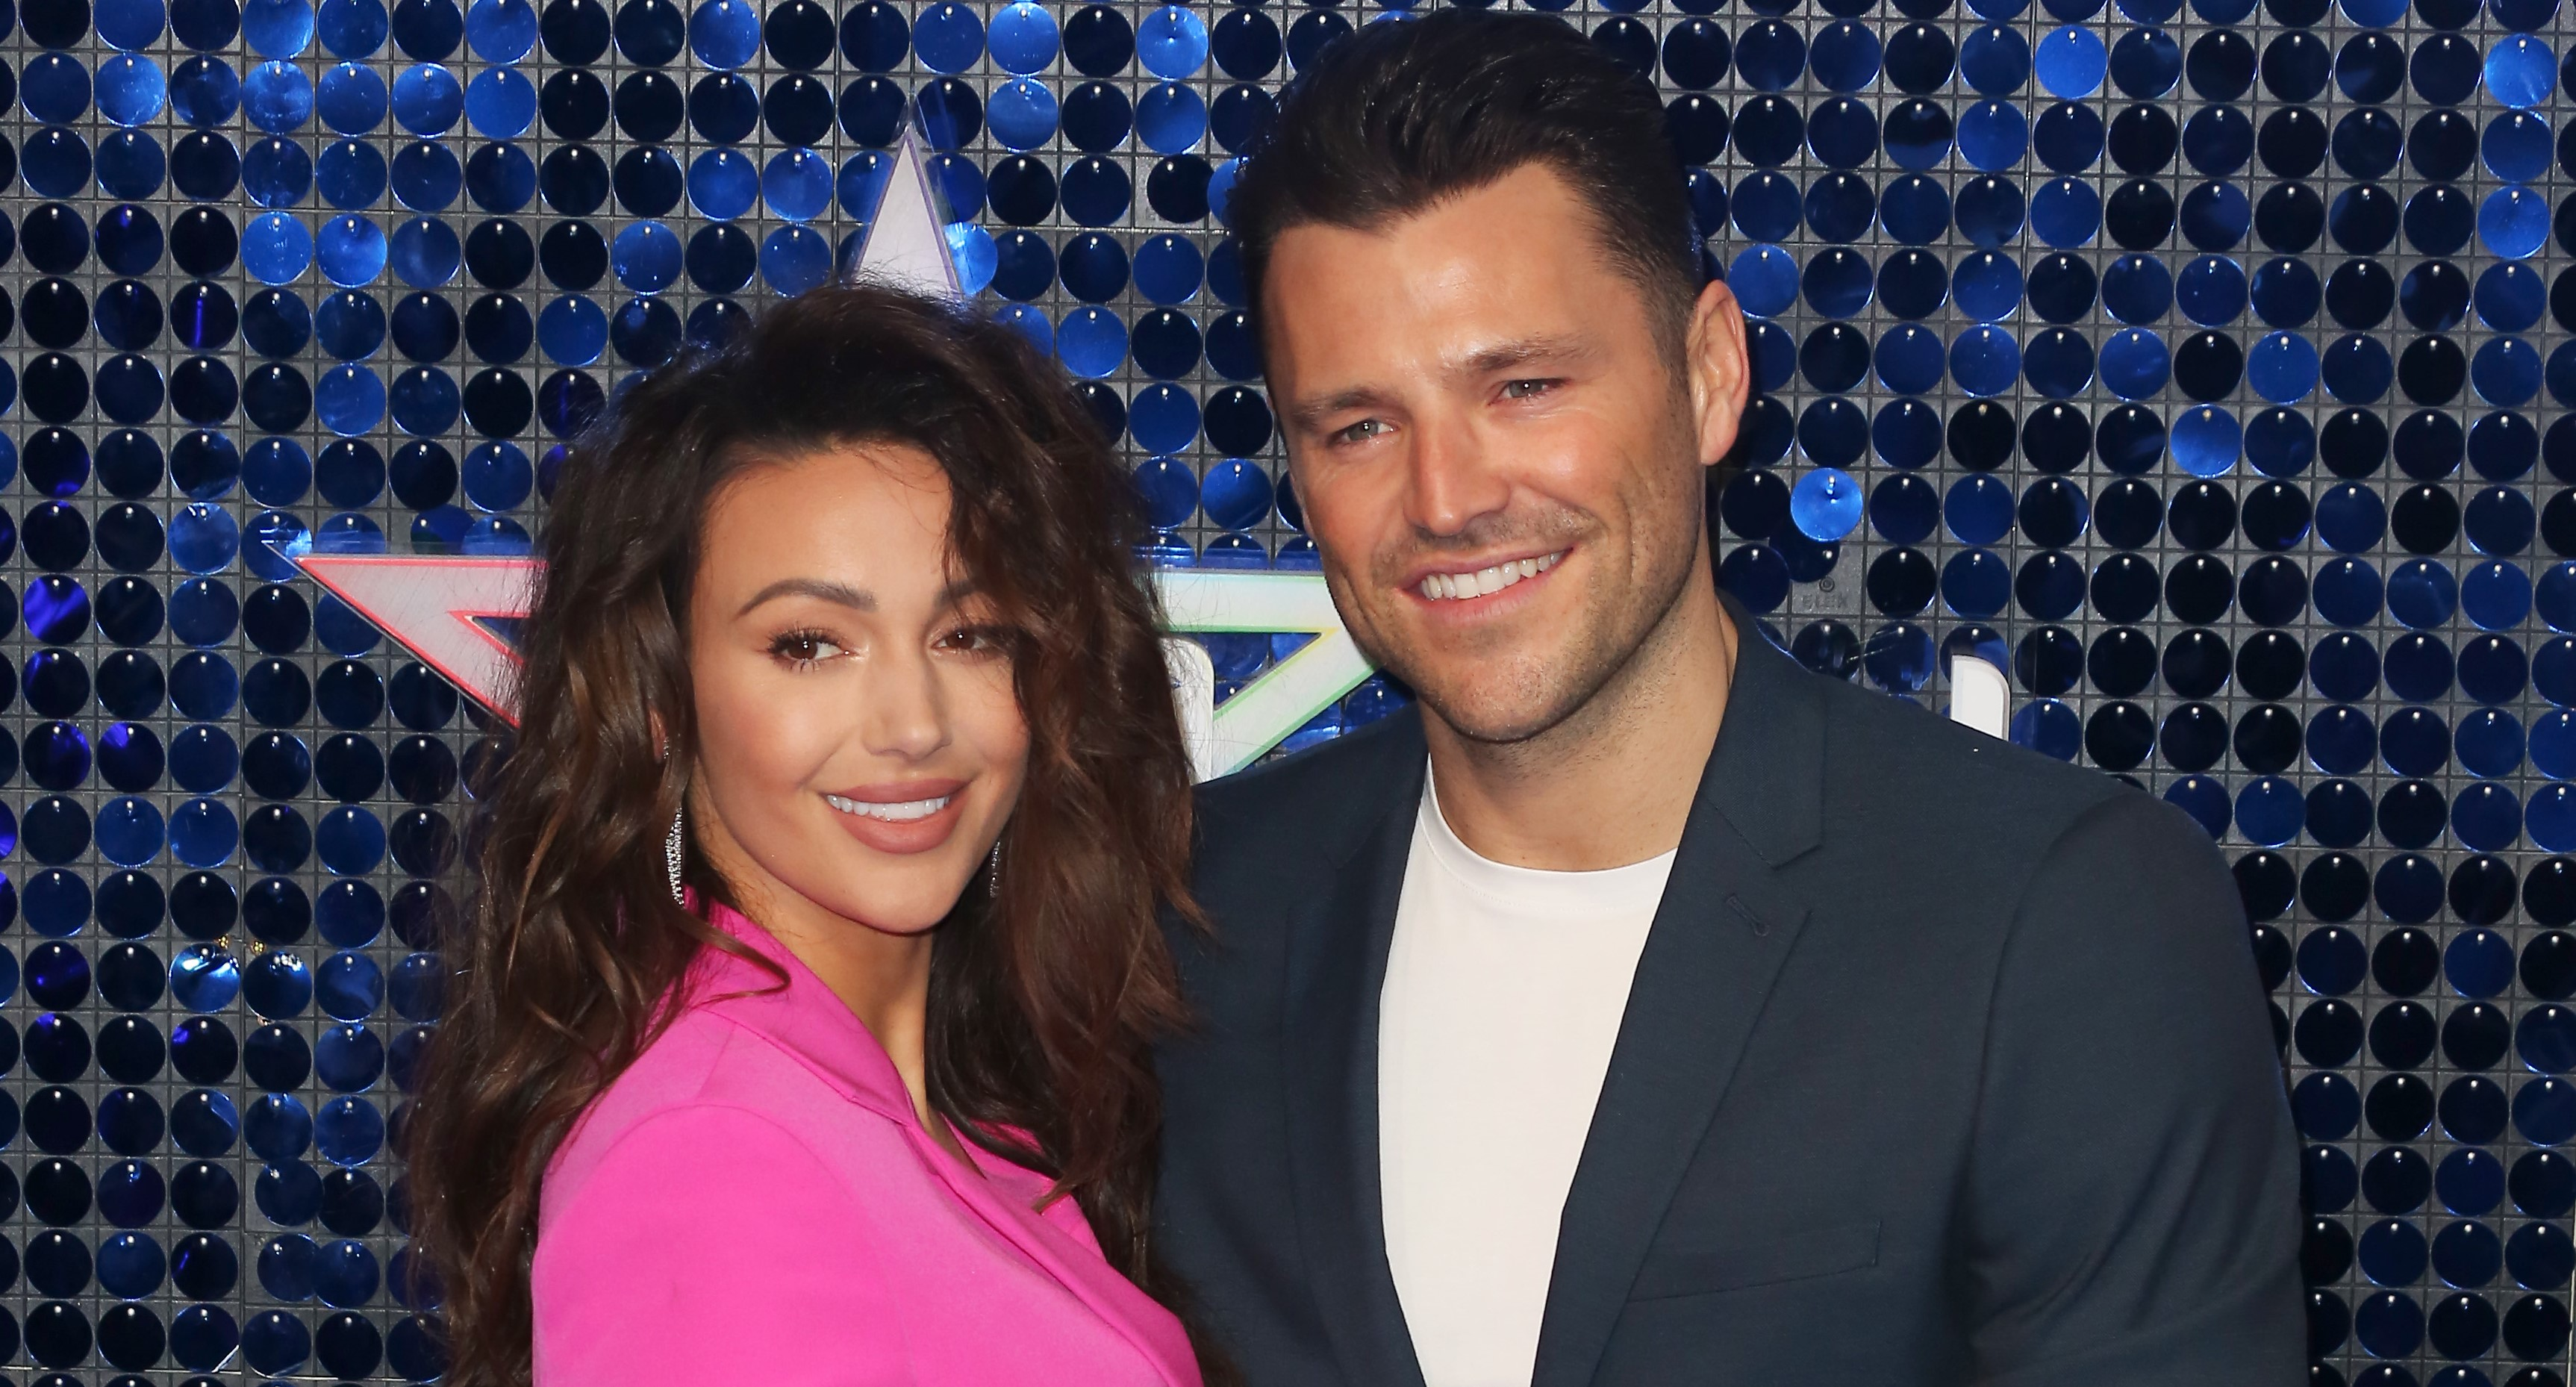 Michelle Keegan reveals she's 'taken back control' of relationship with husband Mark Wright